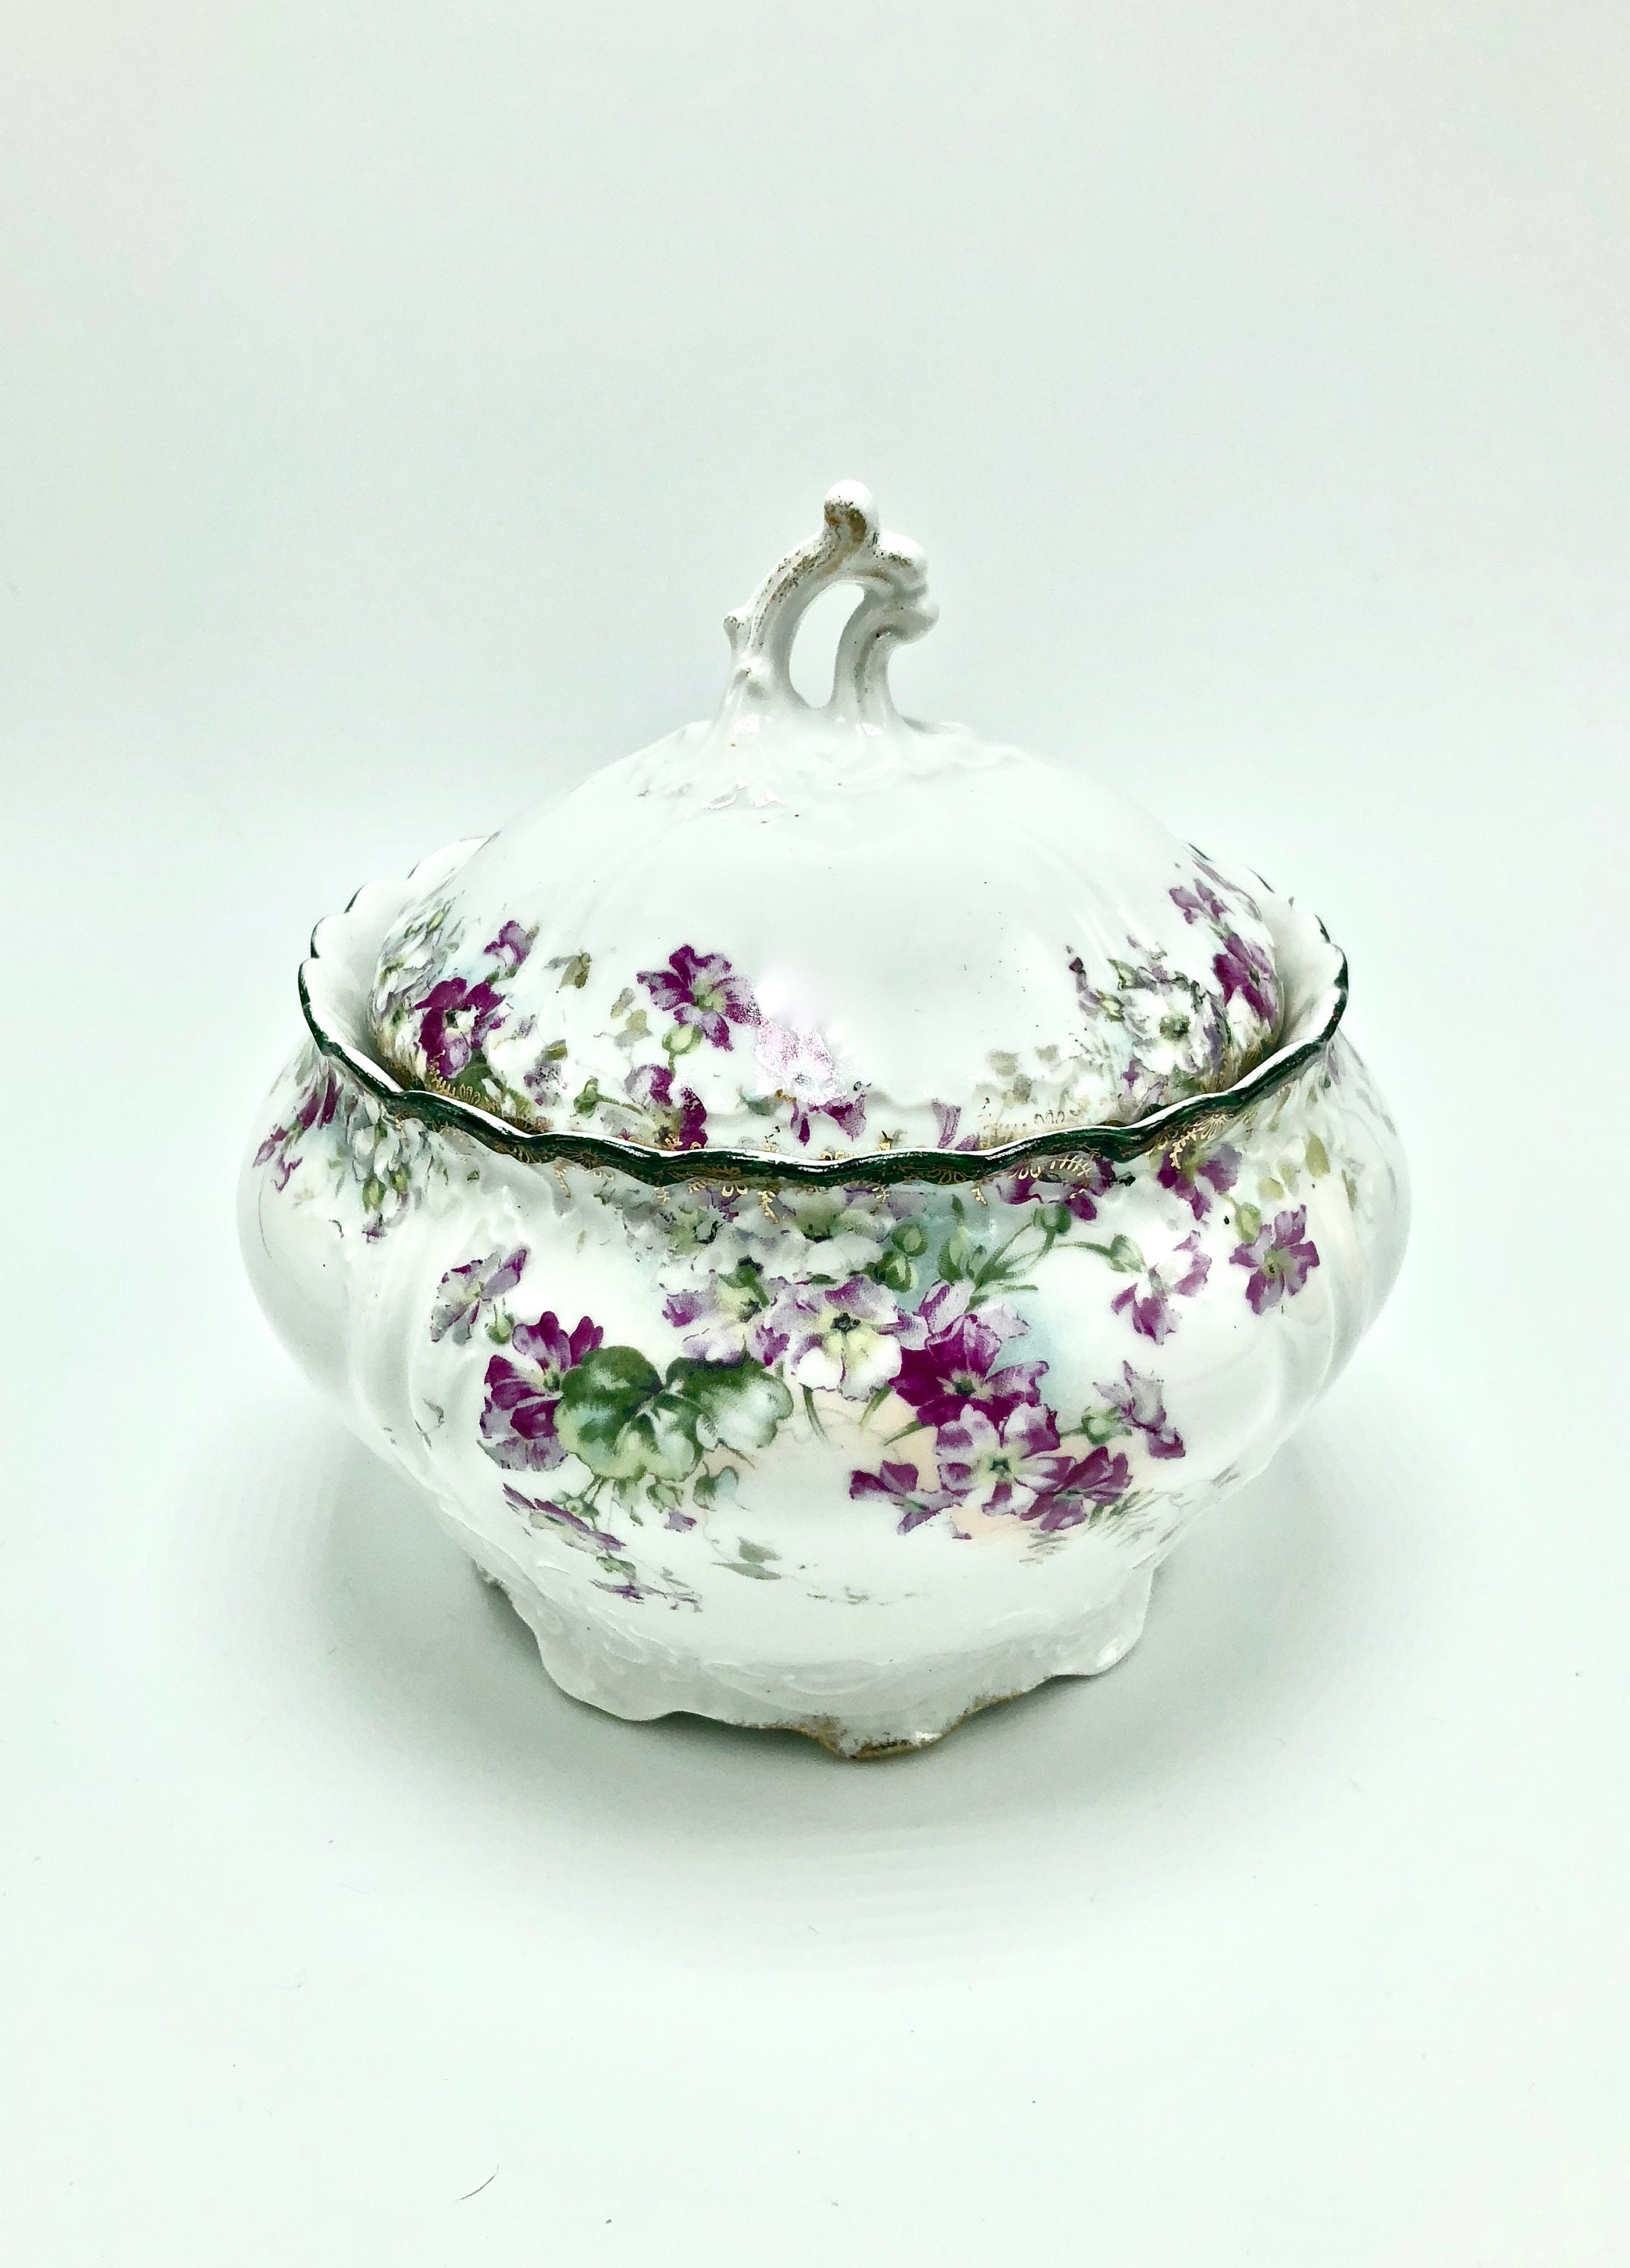 Vintage Covered Floral Bowl  Hand Painted German Porcelain  Mom Gift   Wife Gift  Anniversary Gift  Gifts for Her  Daughter Gift